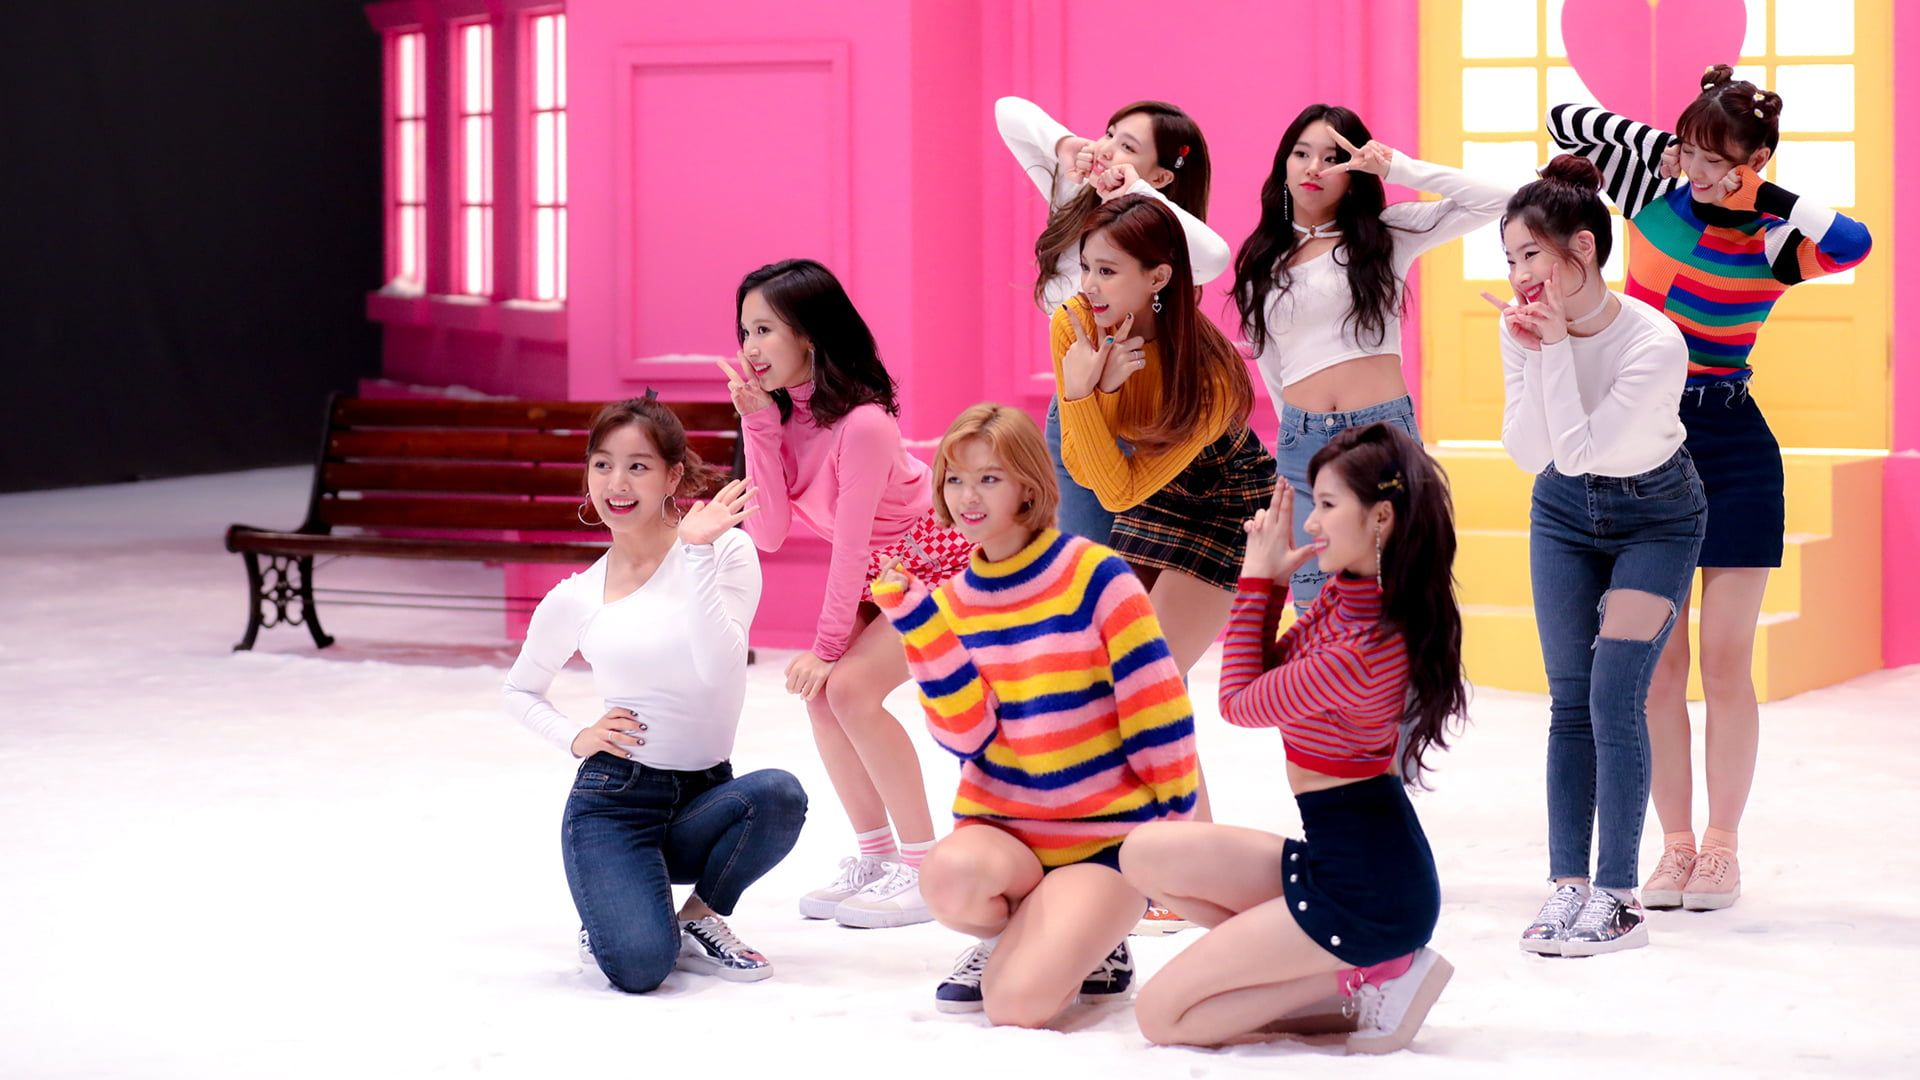 K Pop Twice Asian Group Of Women 1080p Wallpaper Hdwallpaper Desktop In 2020 Twice Kpop Girls Kpop